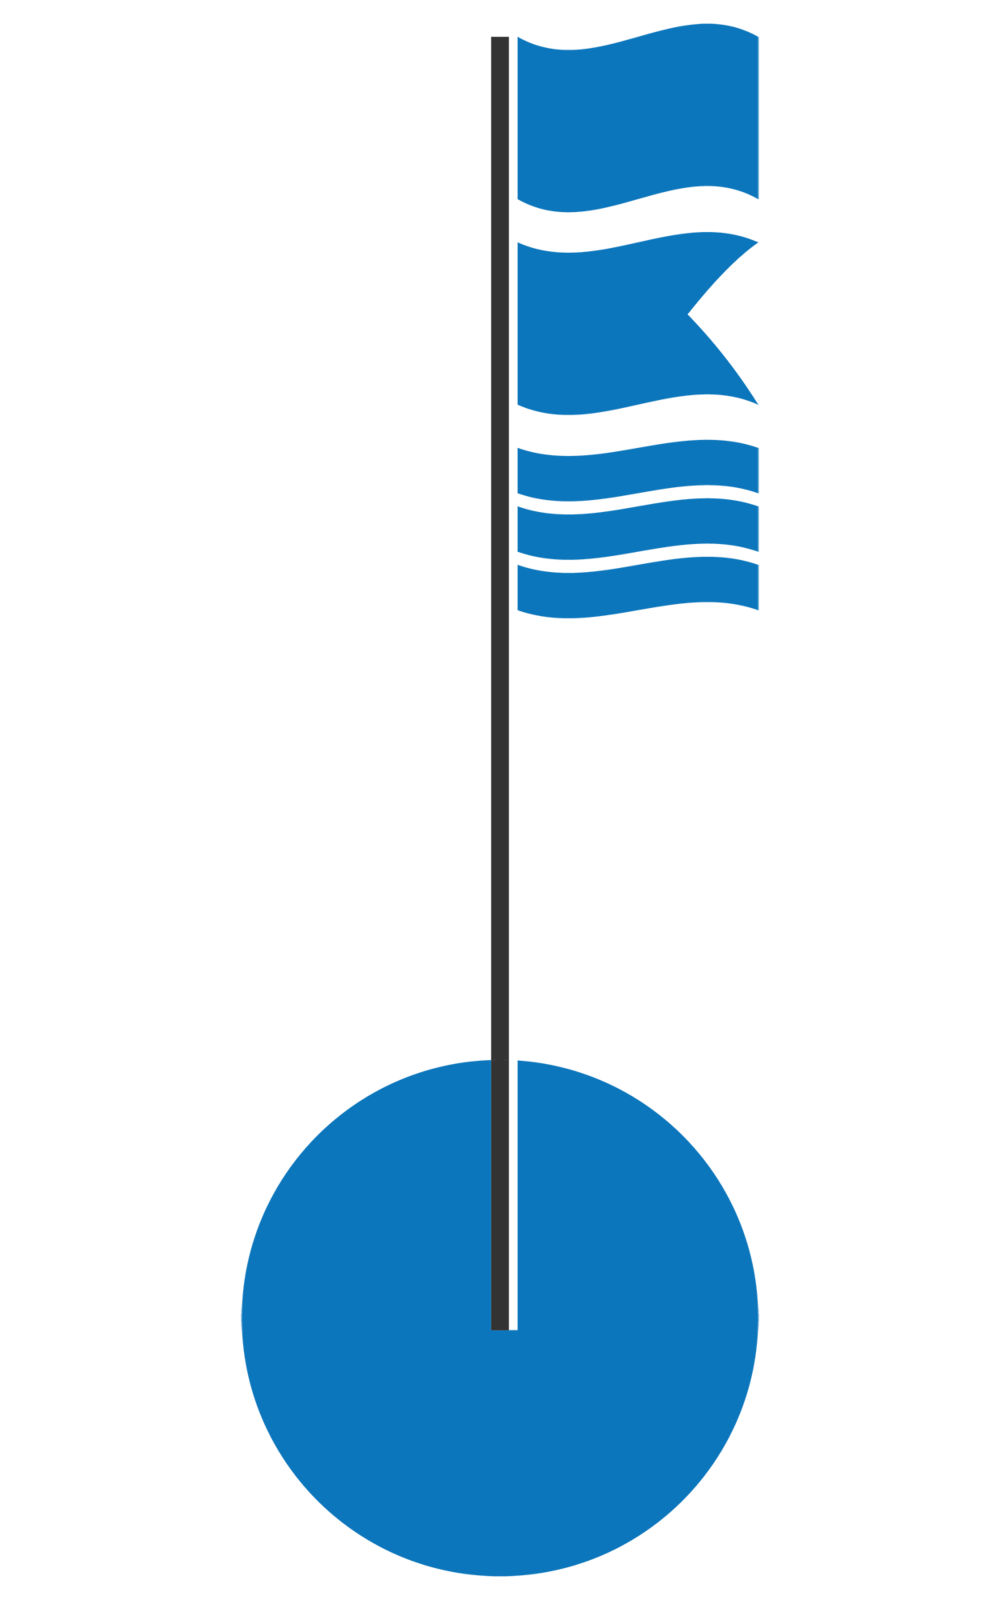 flag+icon-01+copy2.png